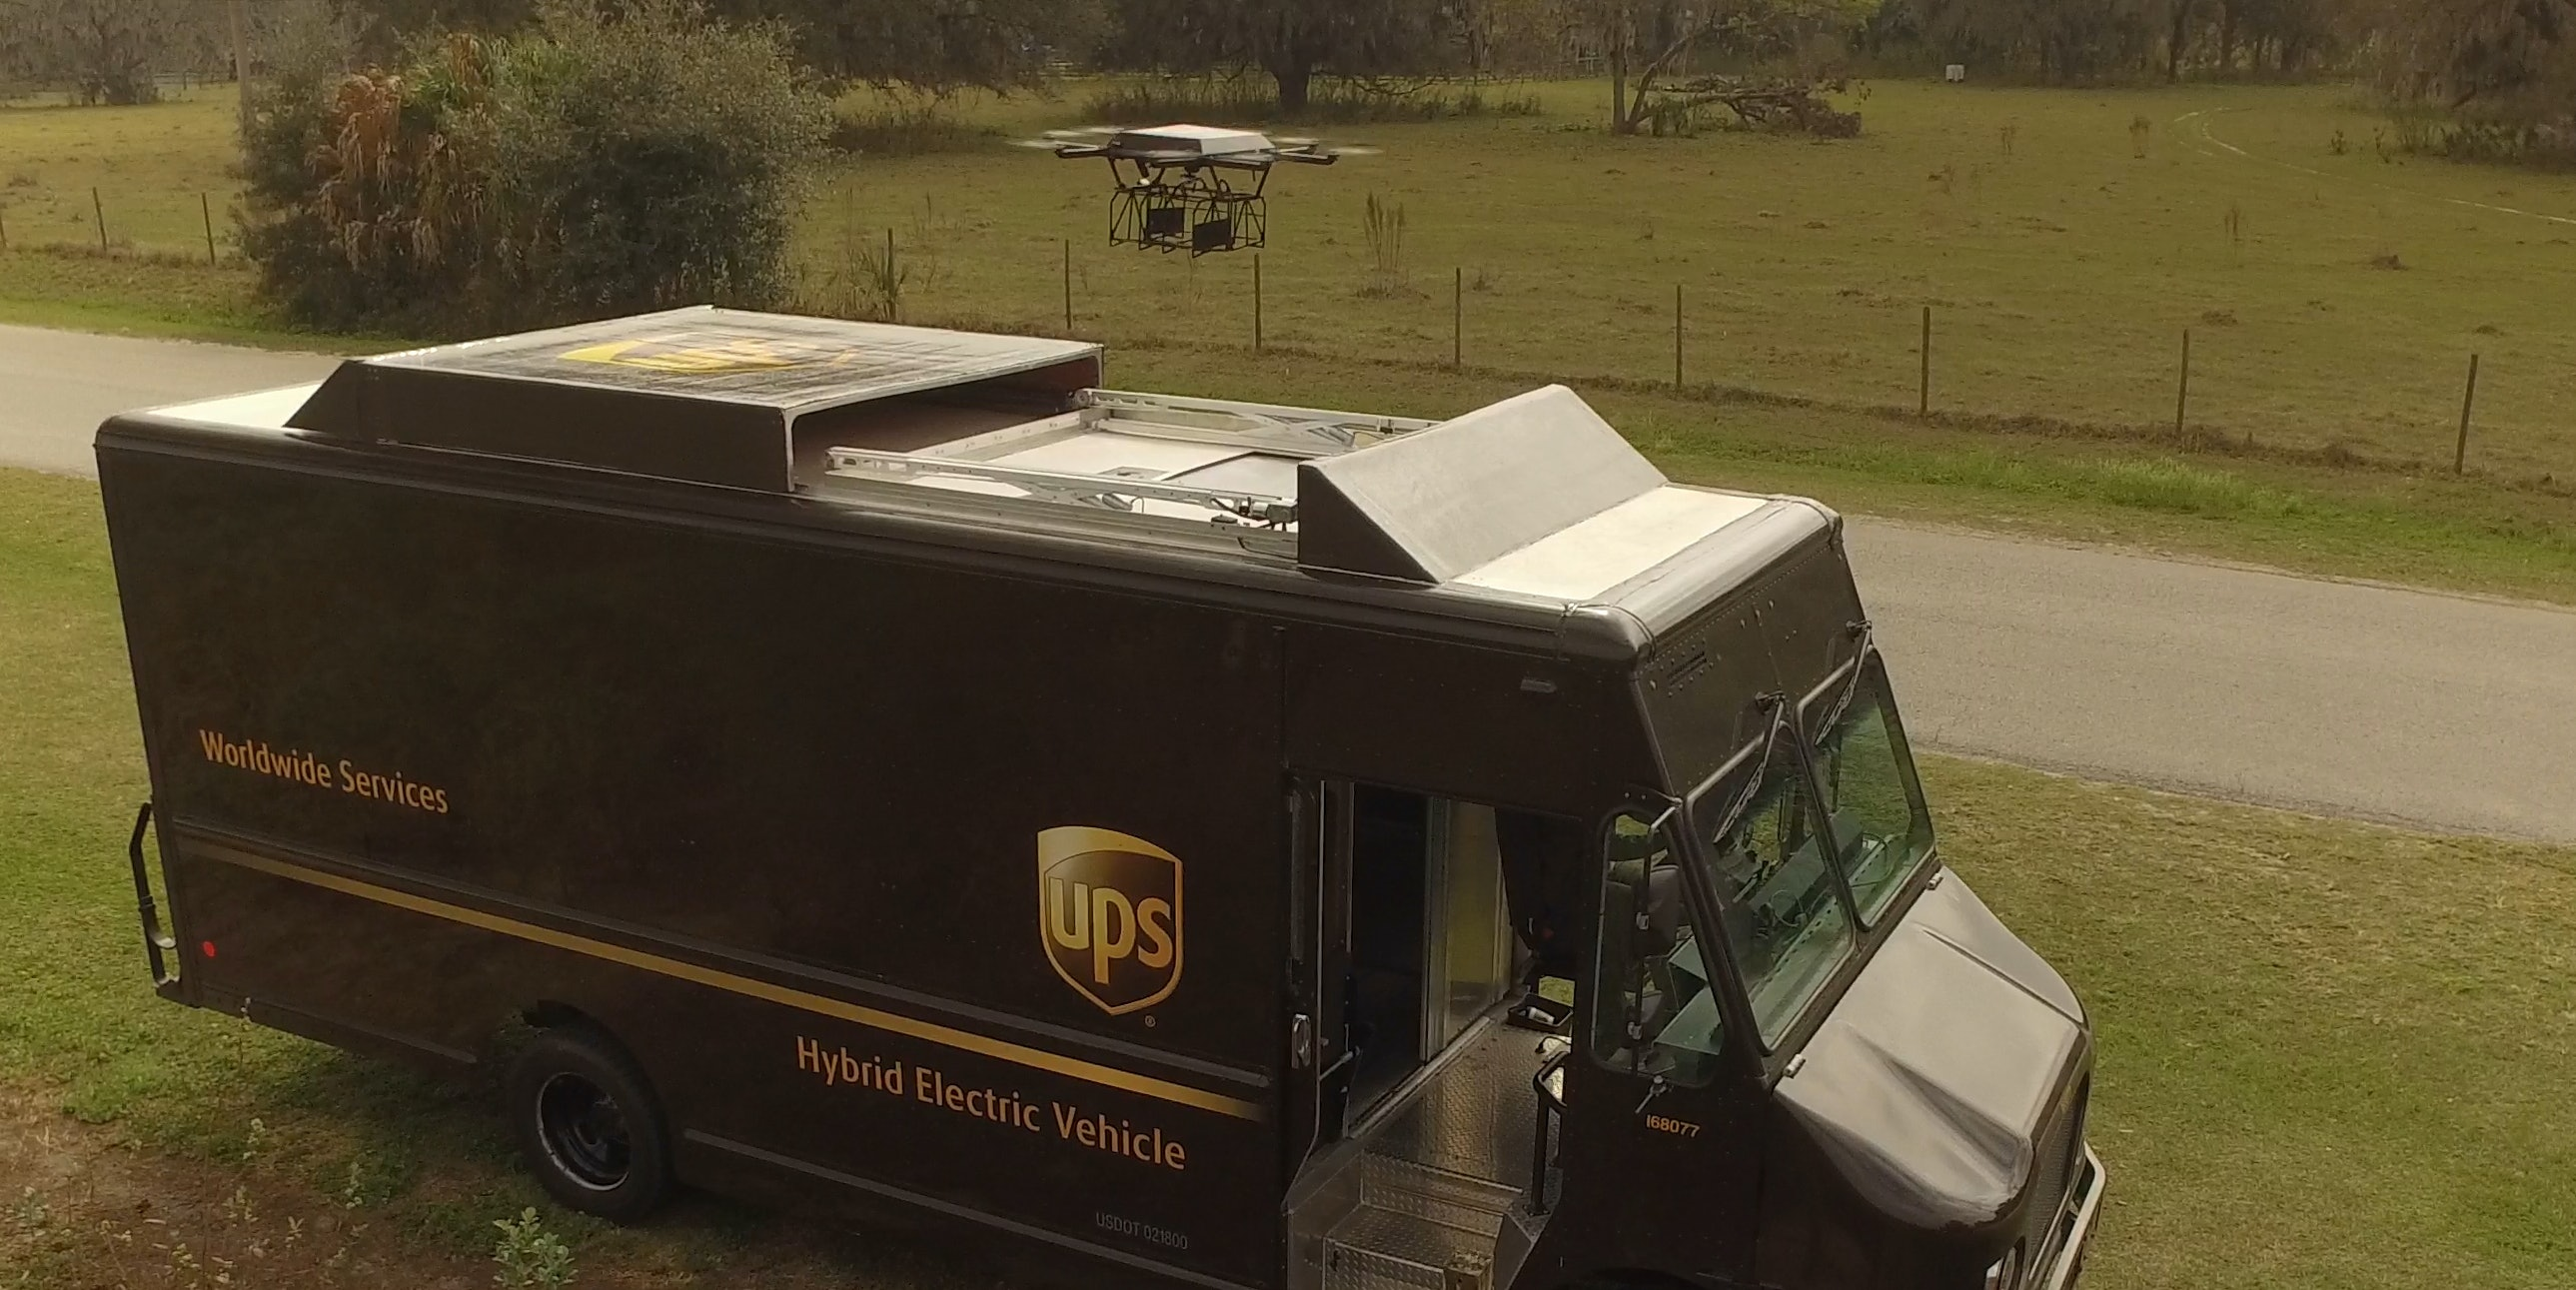 UPS HorseFly octocopter first test flight